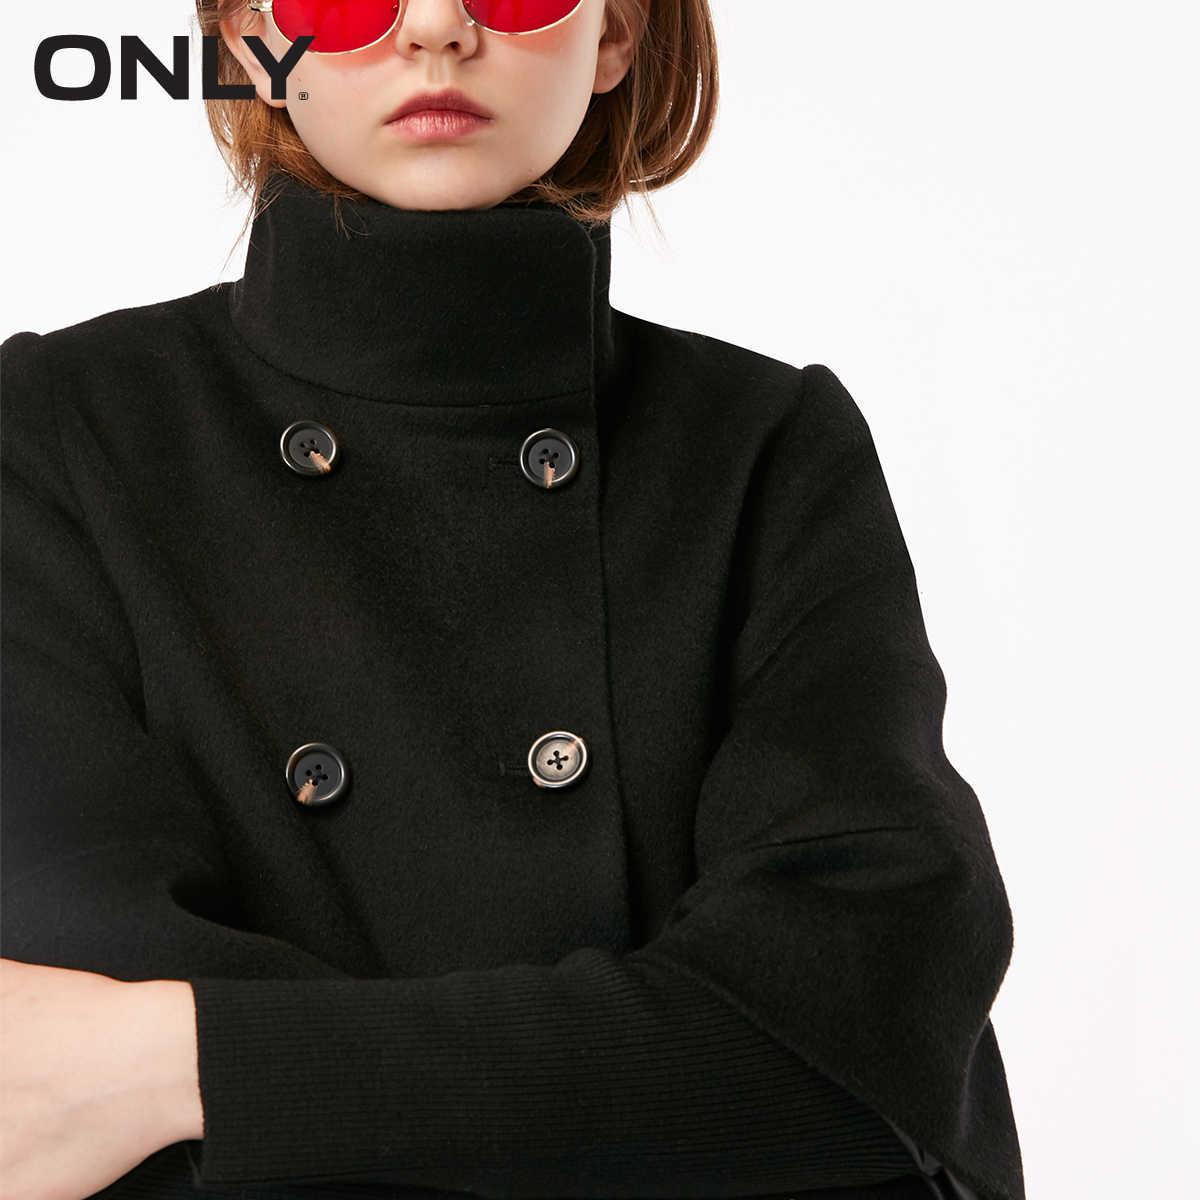 ONLY women's autumn new wool double-breasted woolen coat | 11834S515